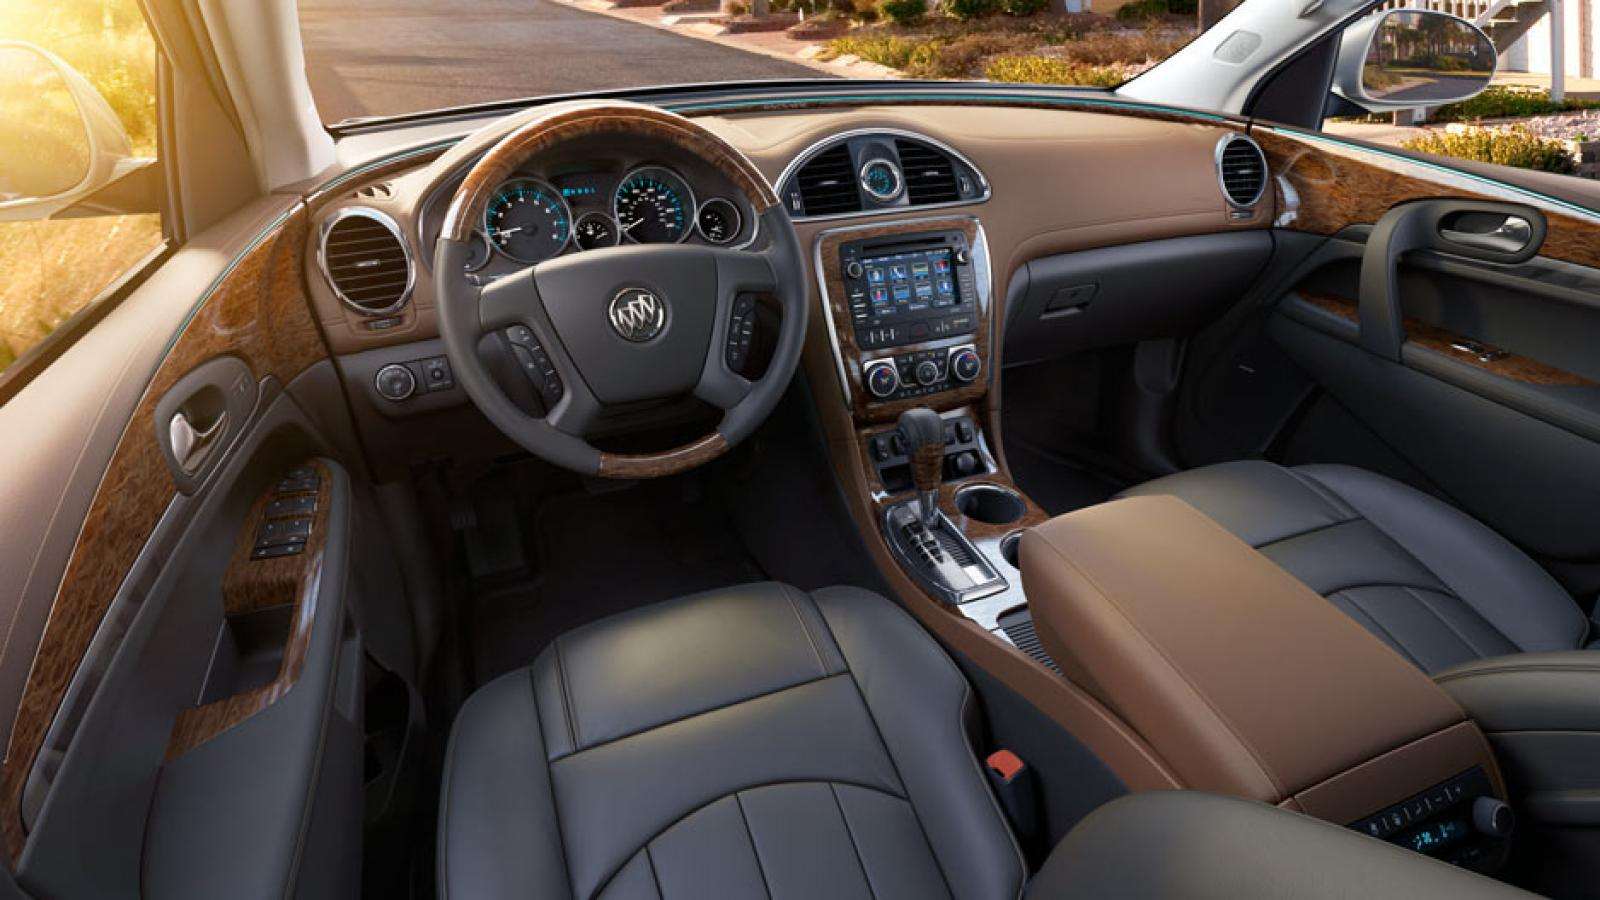 Buick gallery